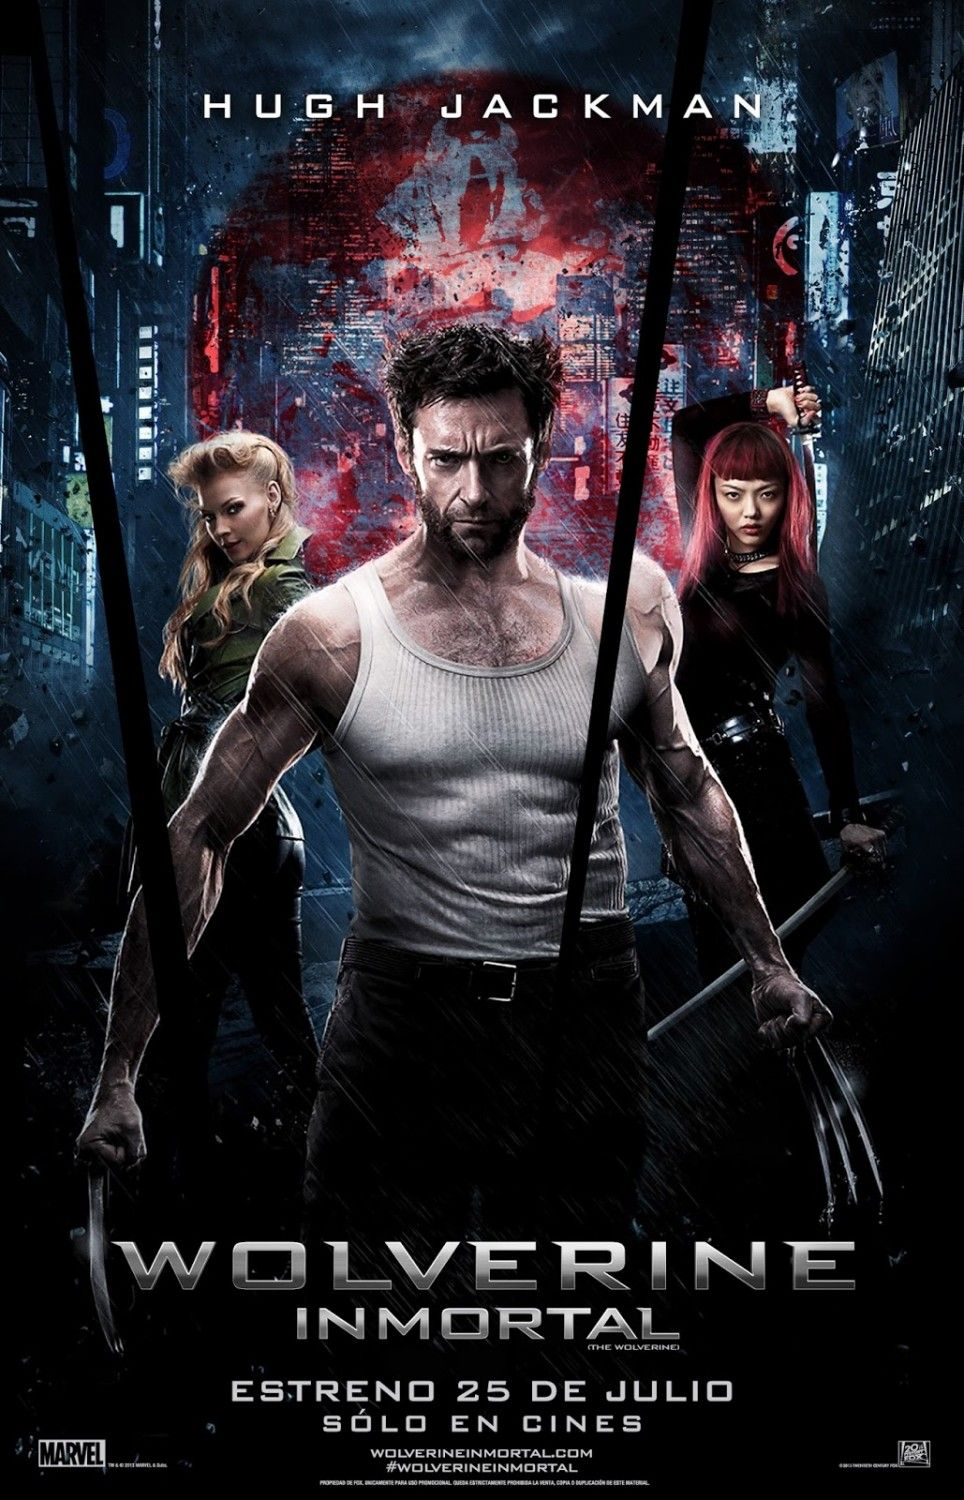 Extra Large Movie Poster Image For The Wolverine Met Afbeeldingen